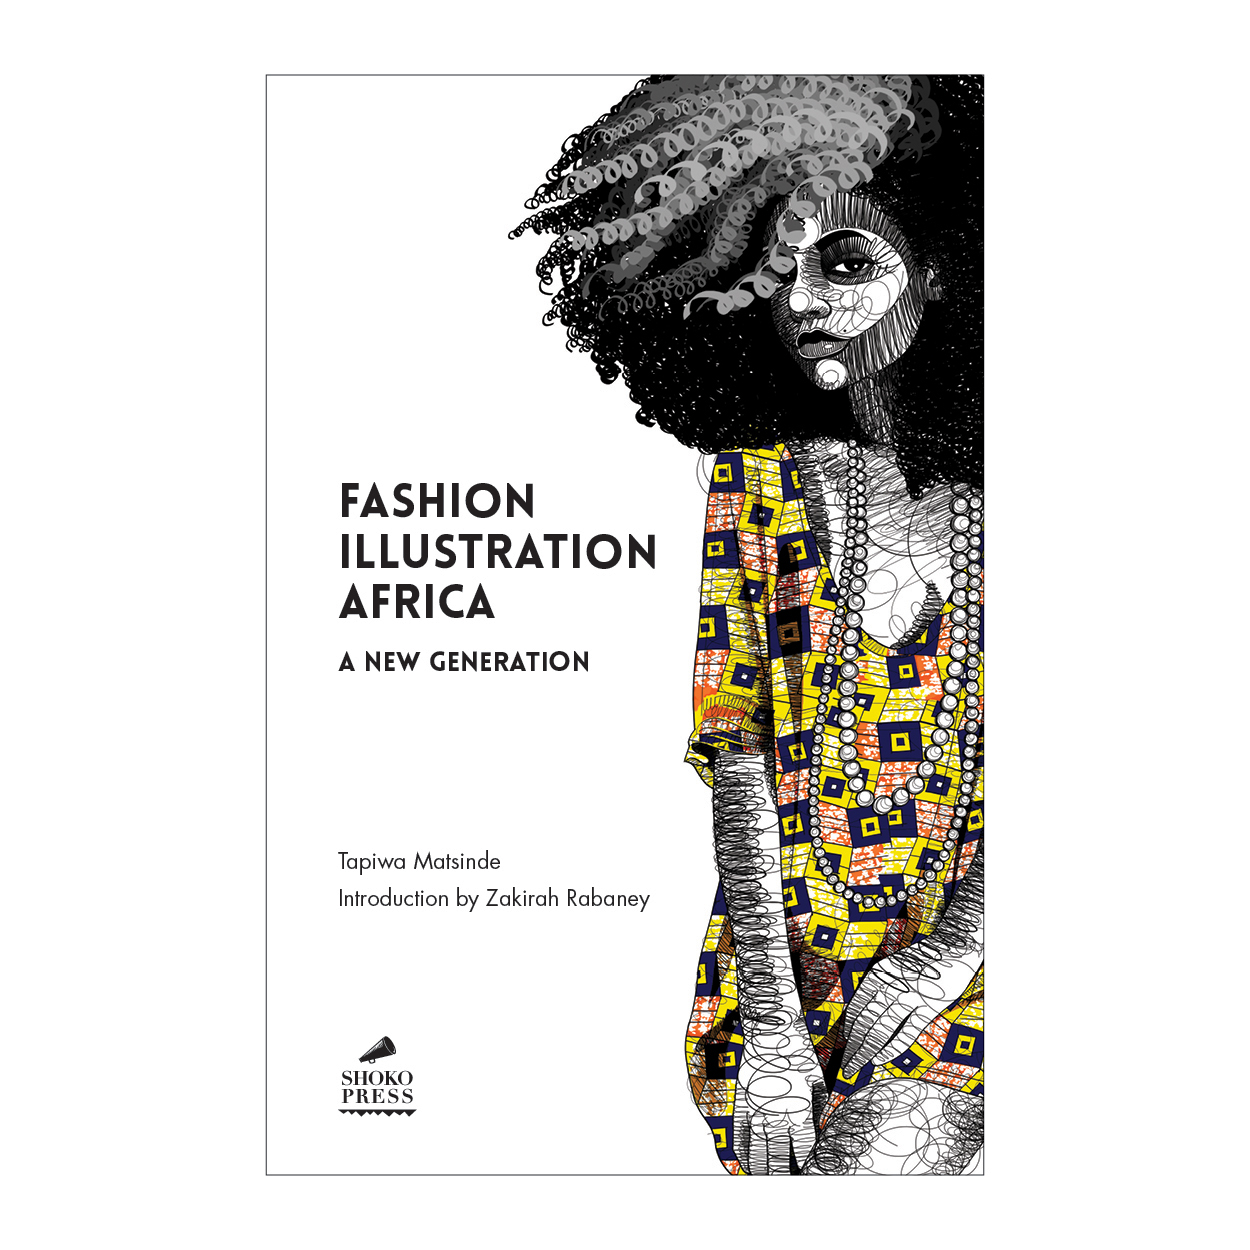 Fashion Book Cover Job : Fashion illustration africa shoko press